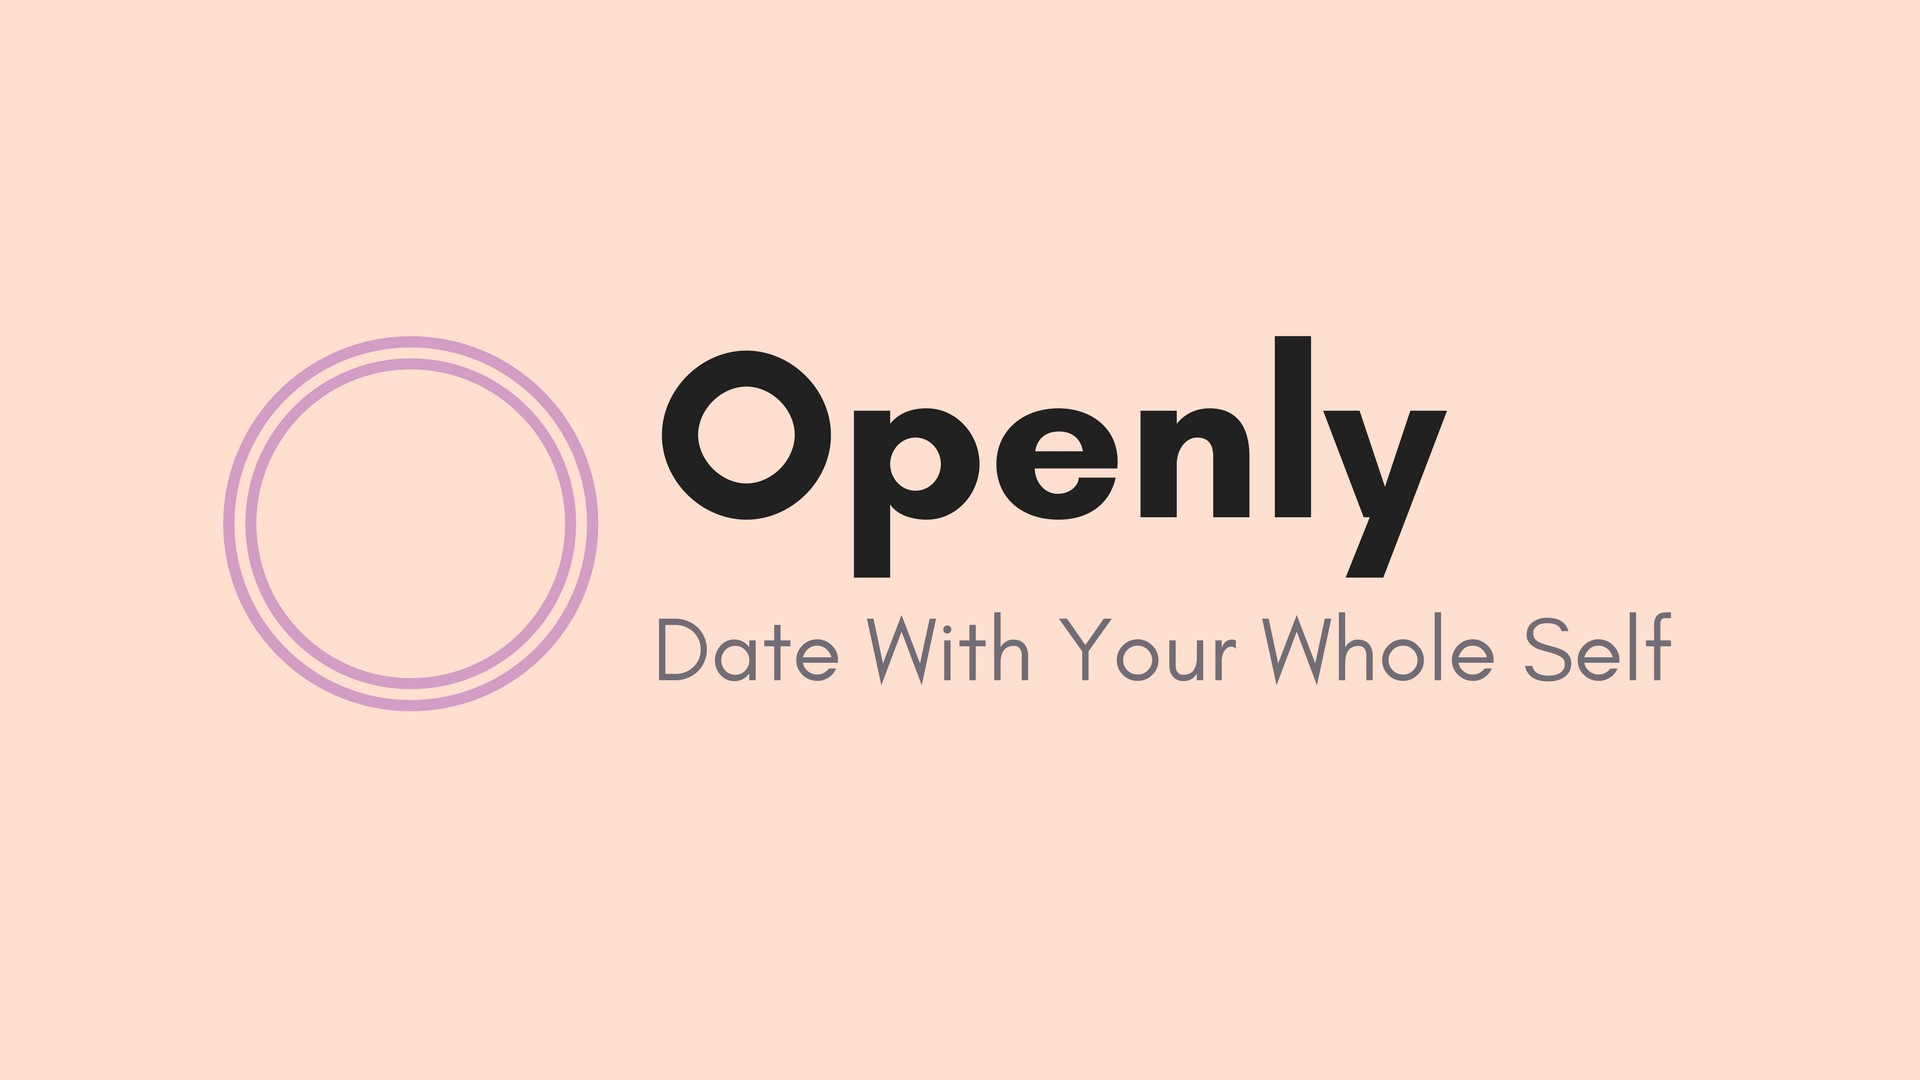 Dating openly